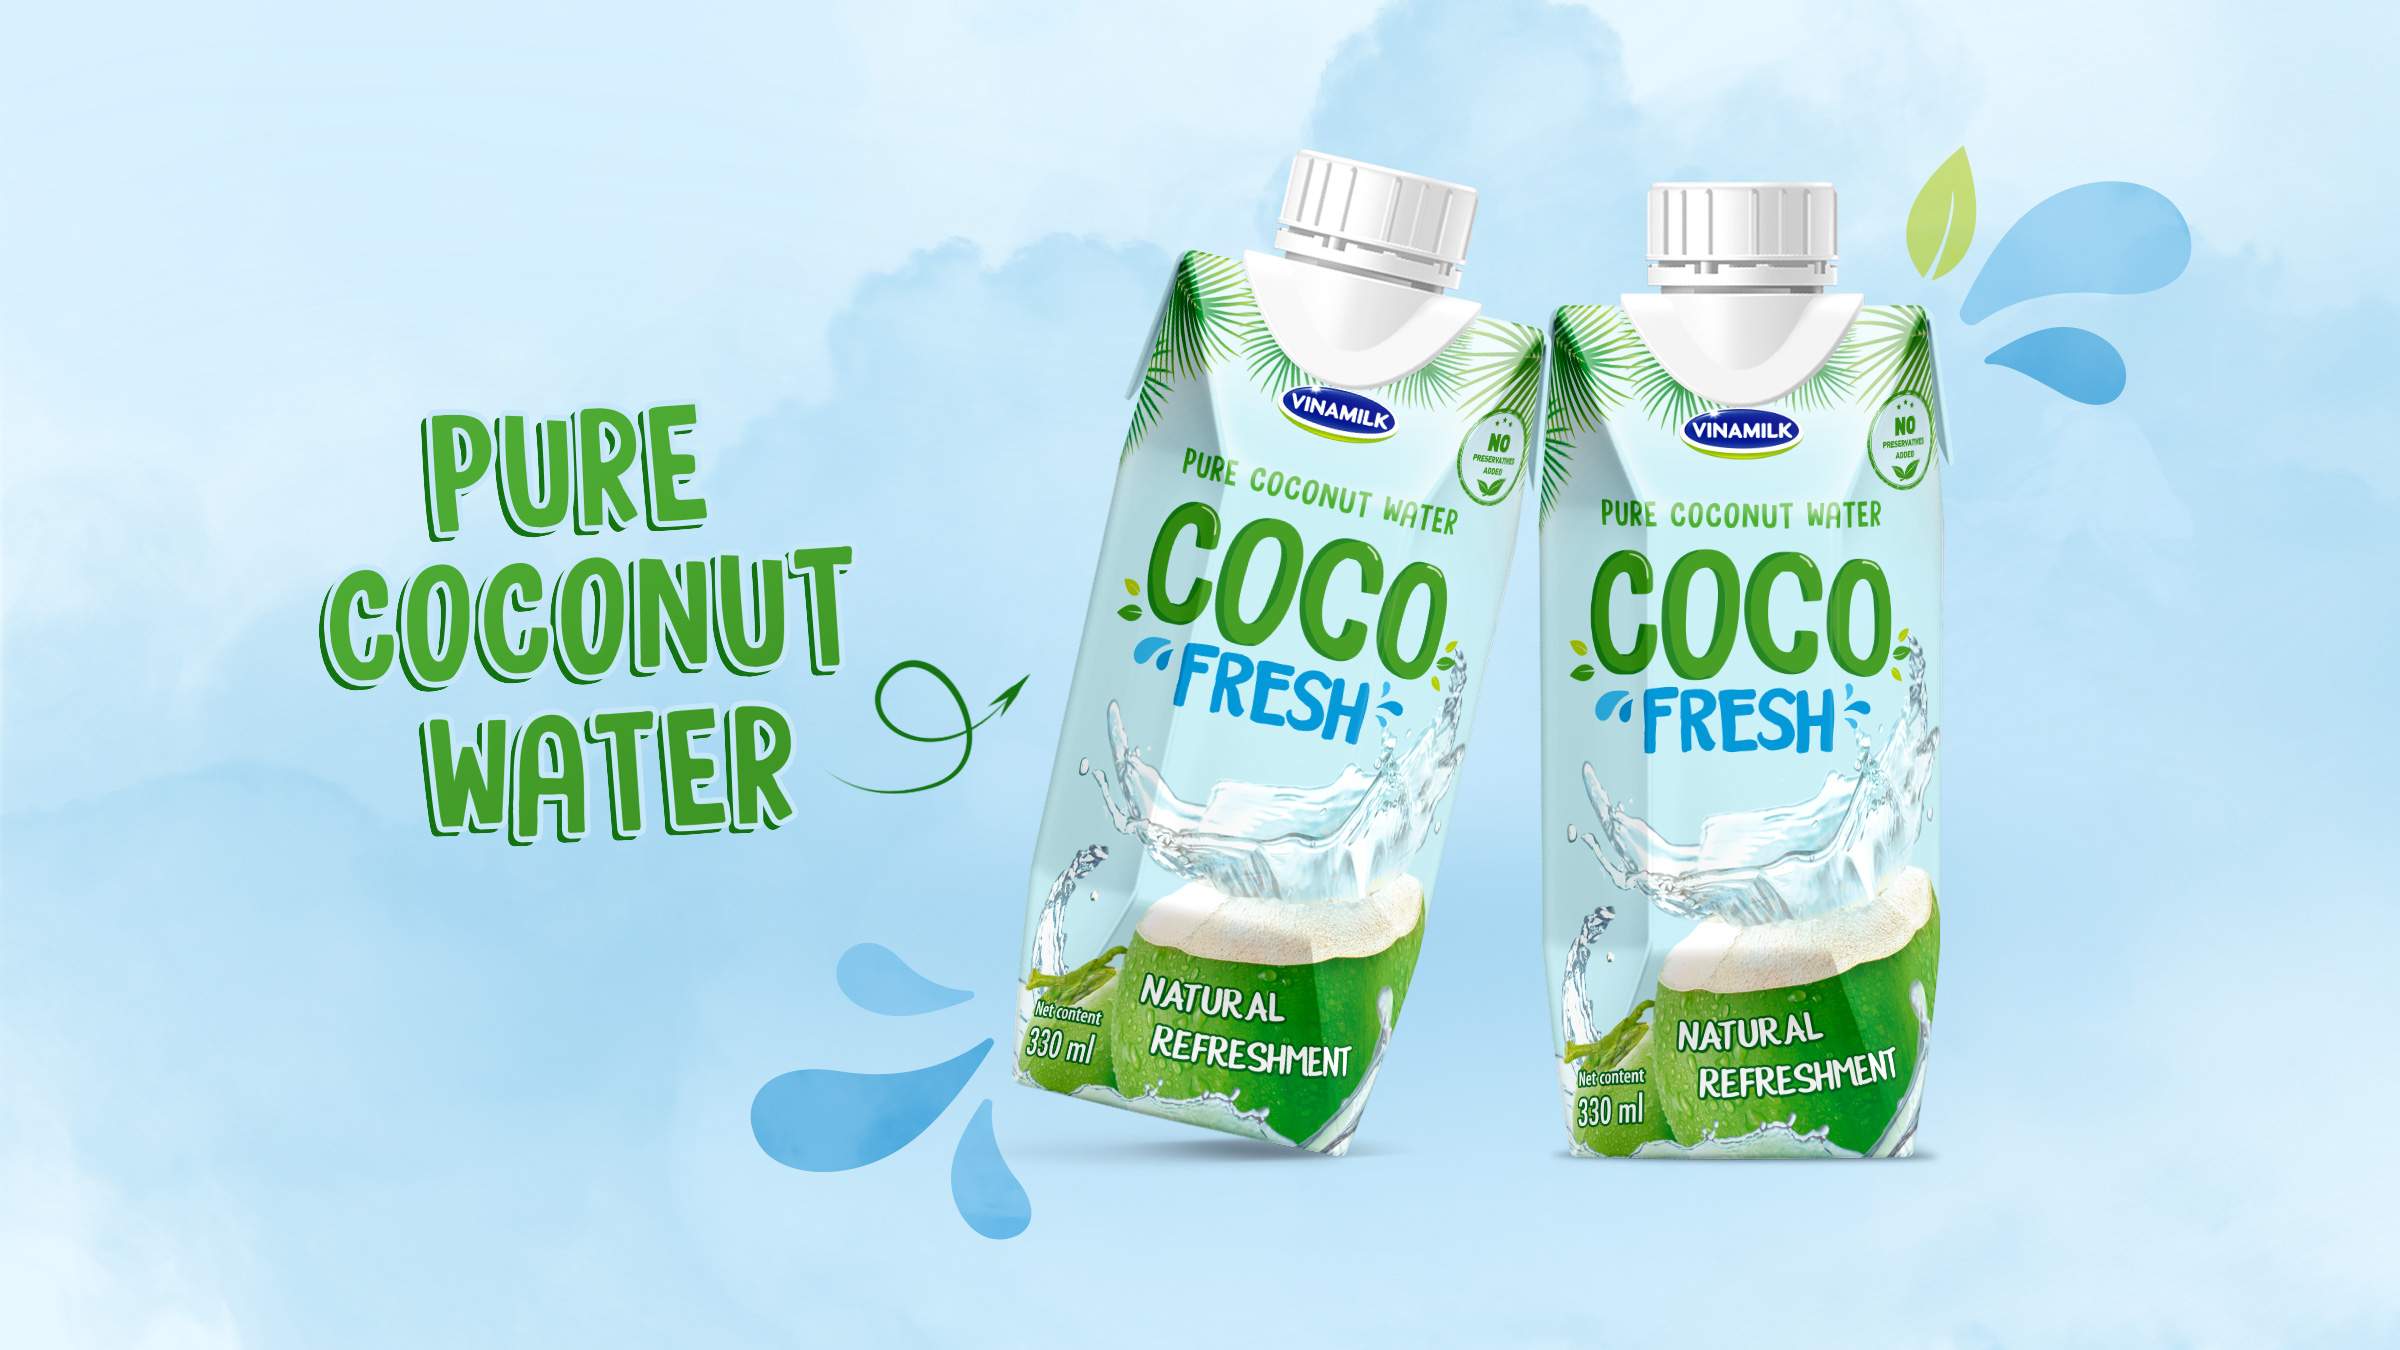 Coconut Water Packaging Design The Circle Branding Partners #circlebranding